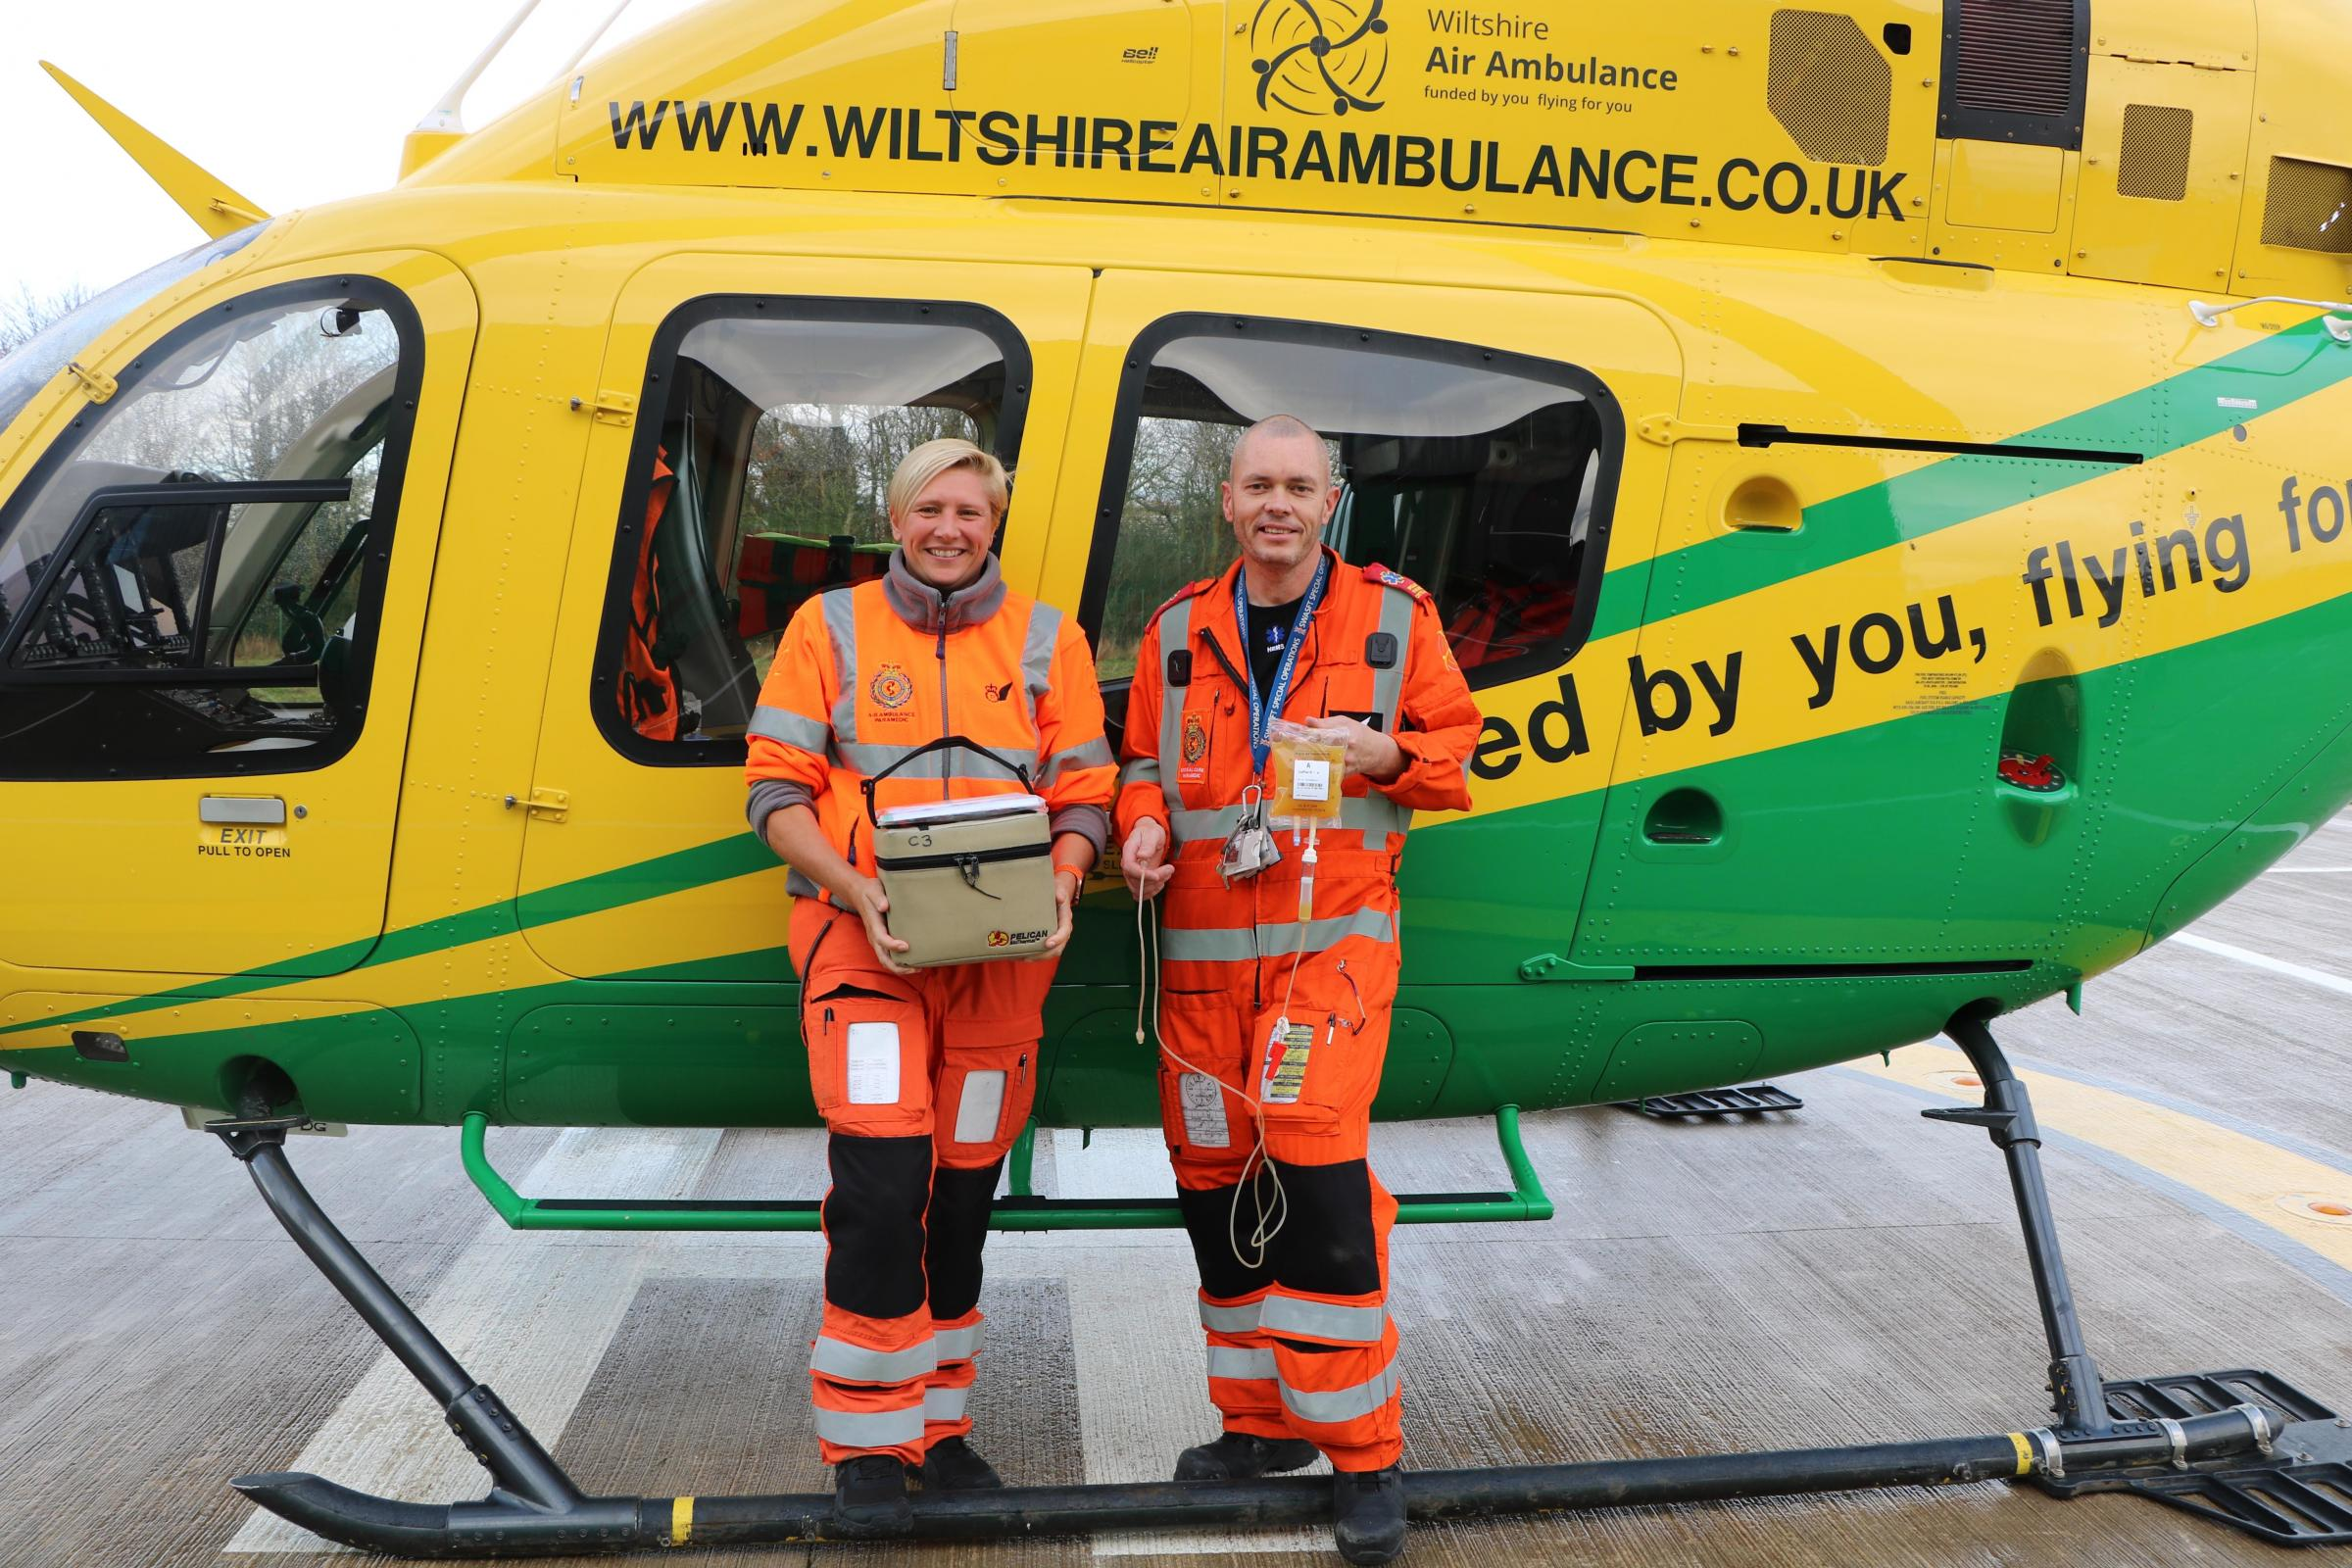 Wiltshire Air Ambulance adds plasma and O negative blood onboard